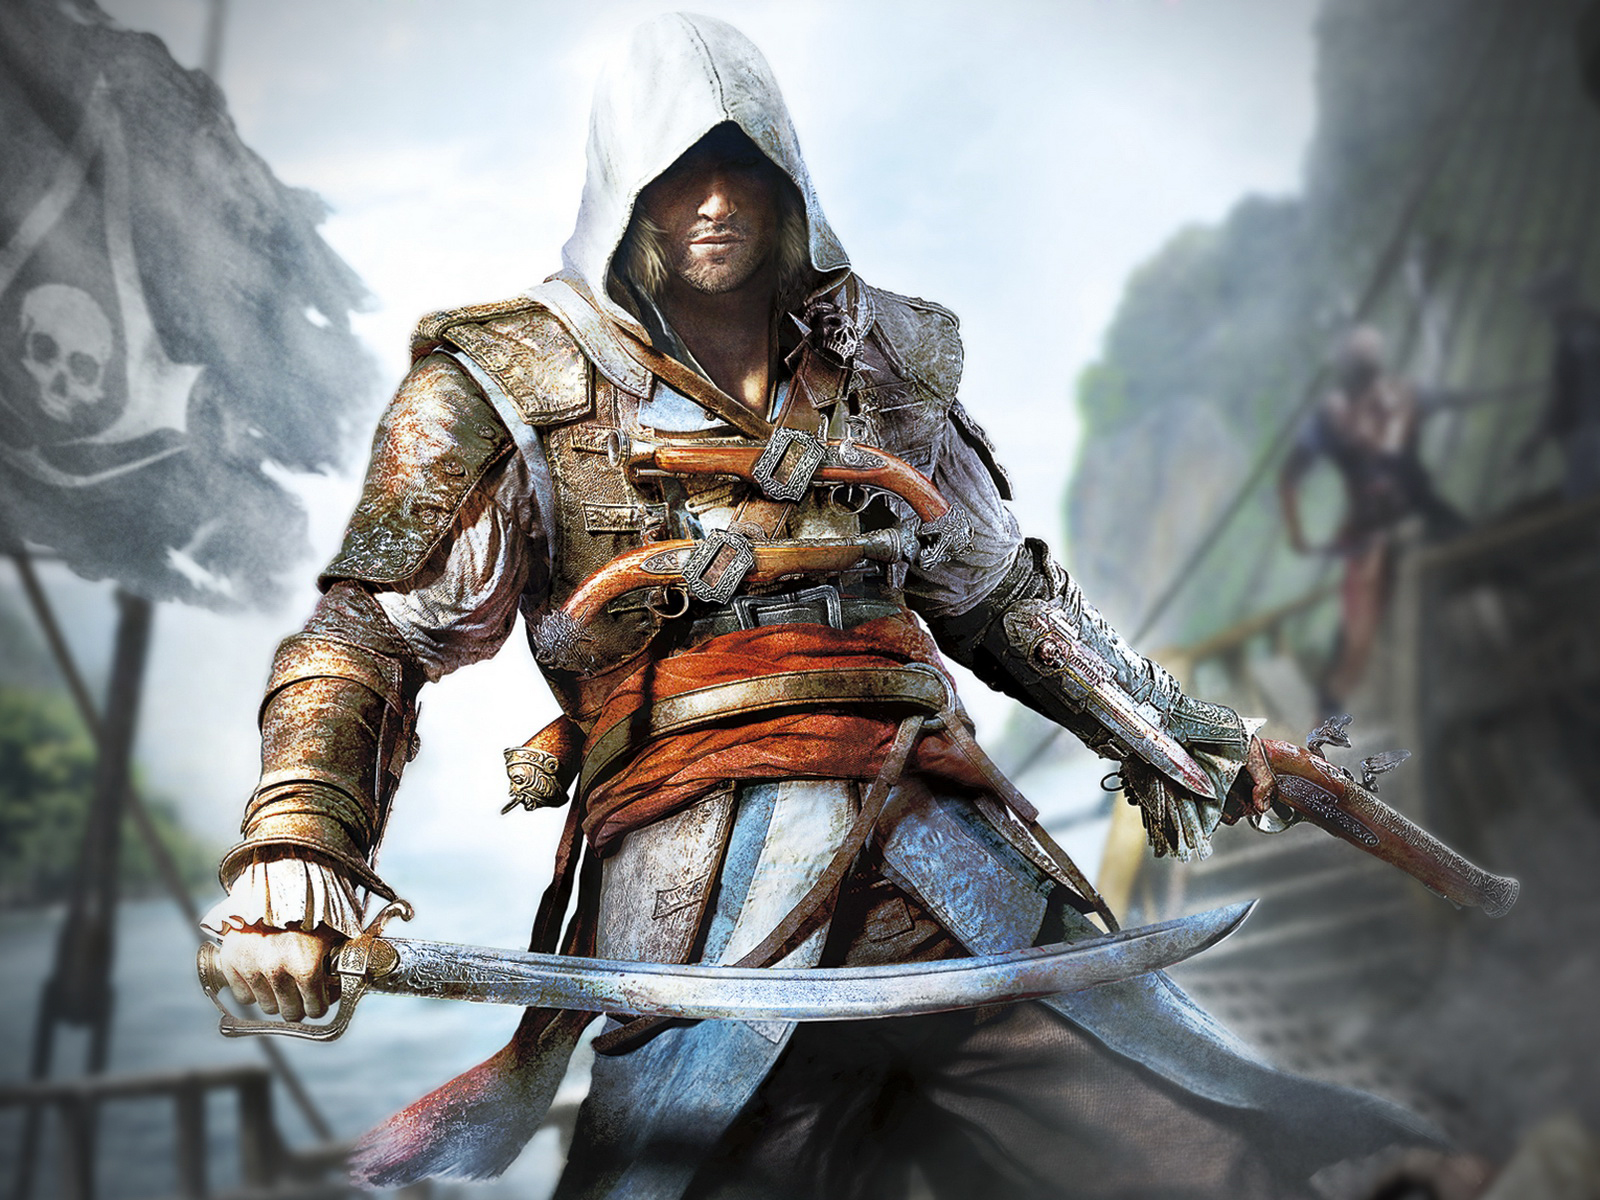 Free Download Thanks For Downloading Assassins Creed Iv Black Flag